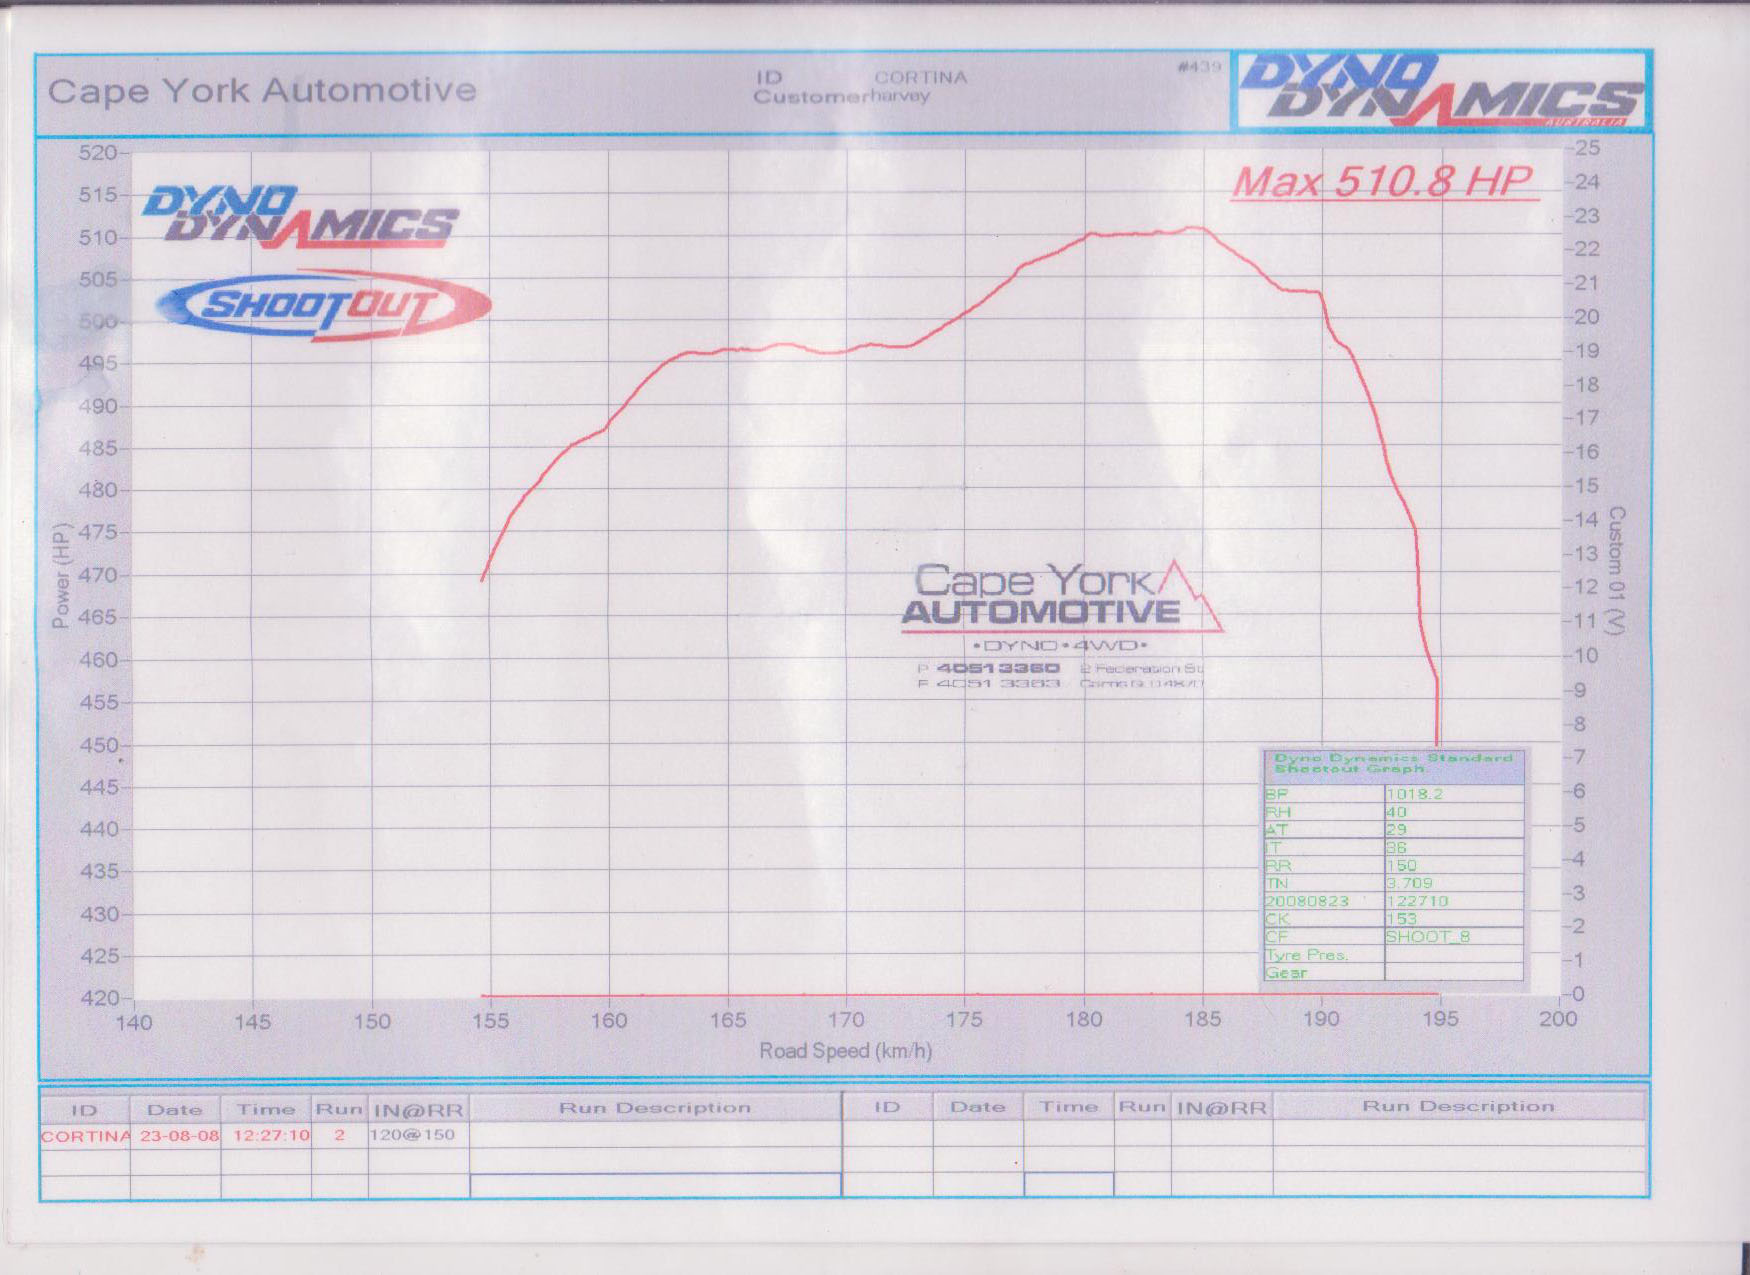 Ford Cortina Dyno Graph Results